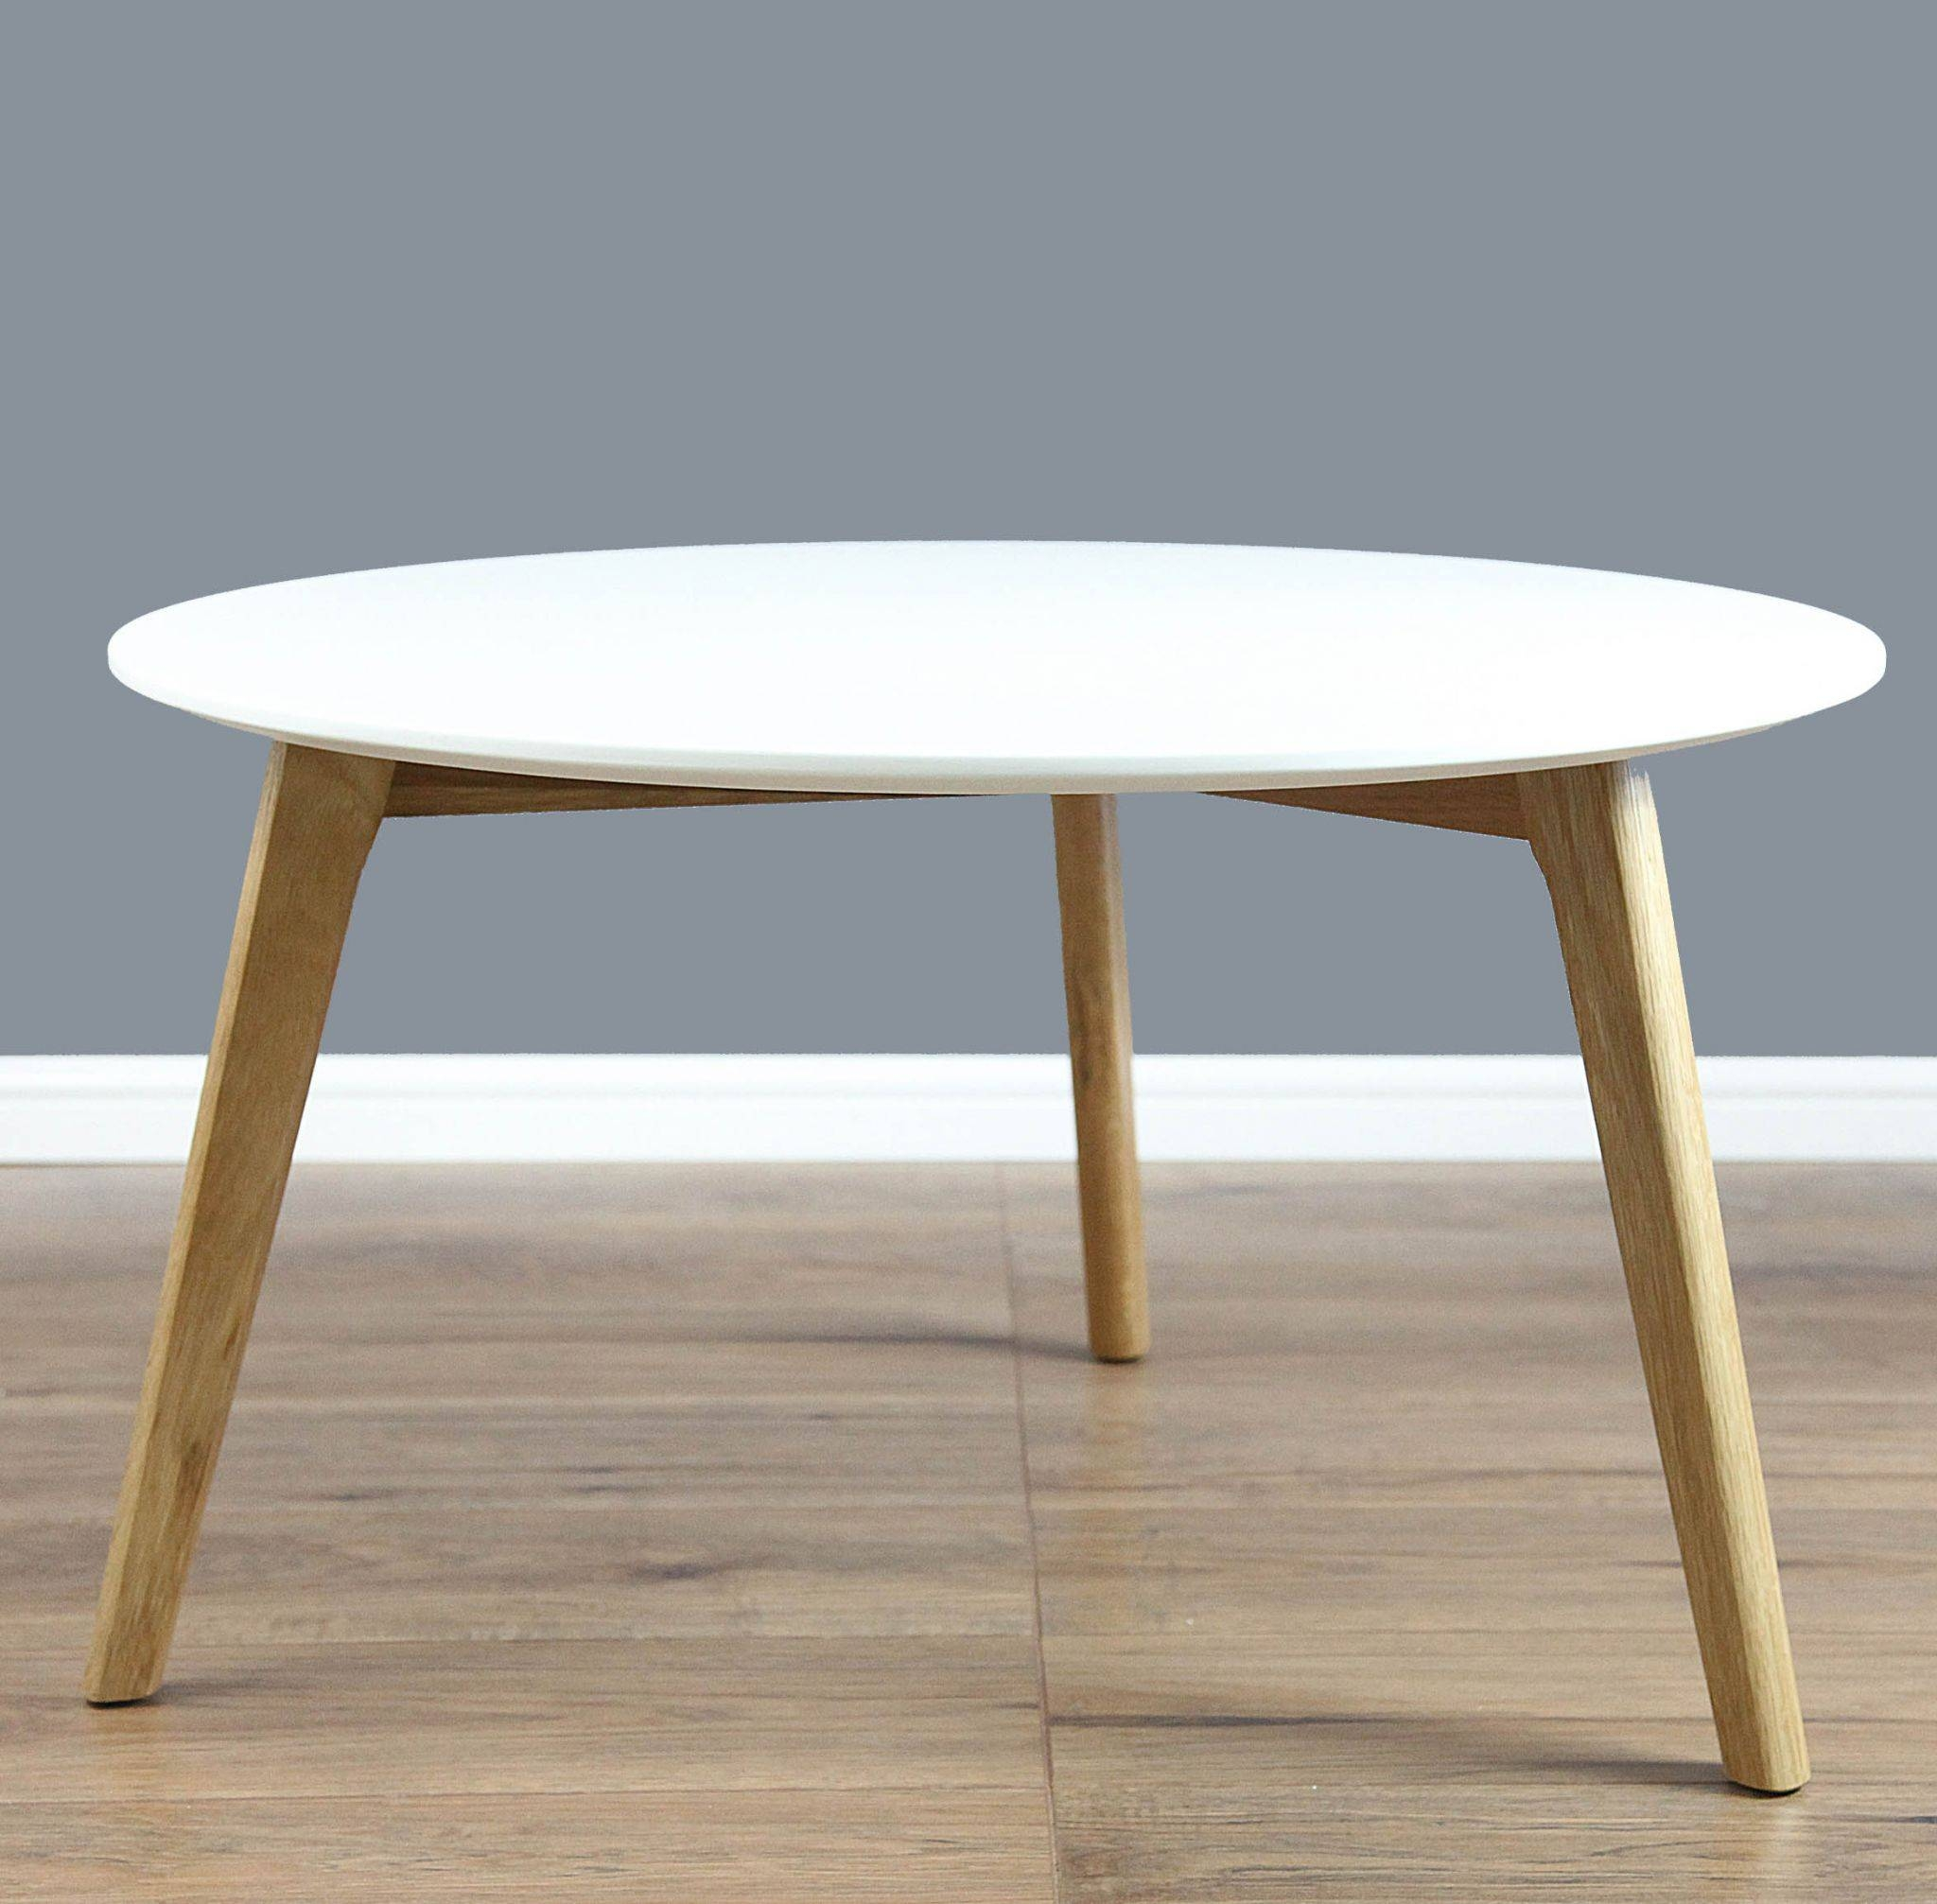 Mmilo Spio Round Coffee Table Side Table With Solid Oak Legs In With White And Oak Coffee Tables (View 11 of 30)